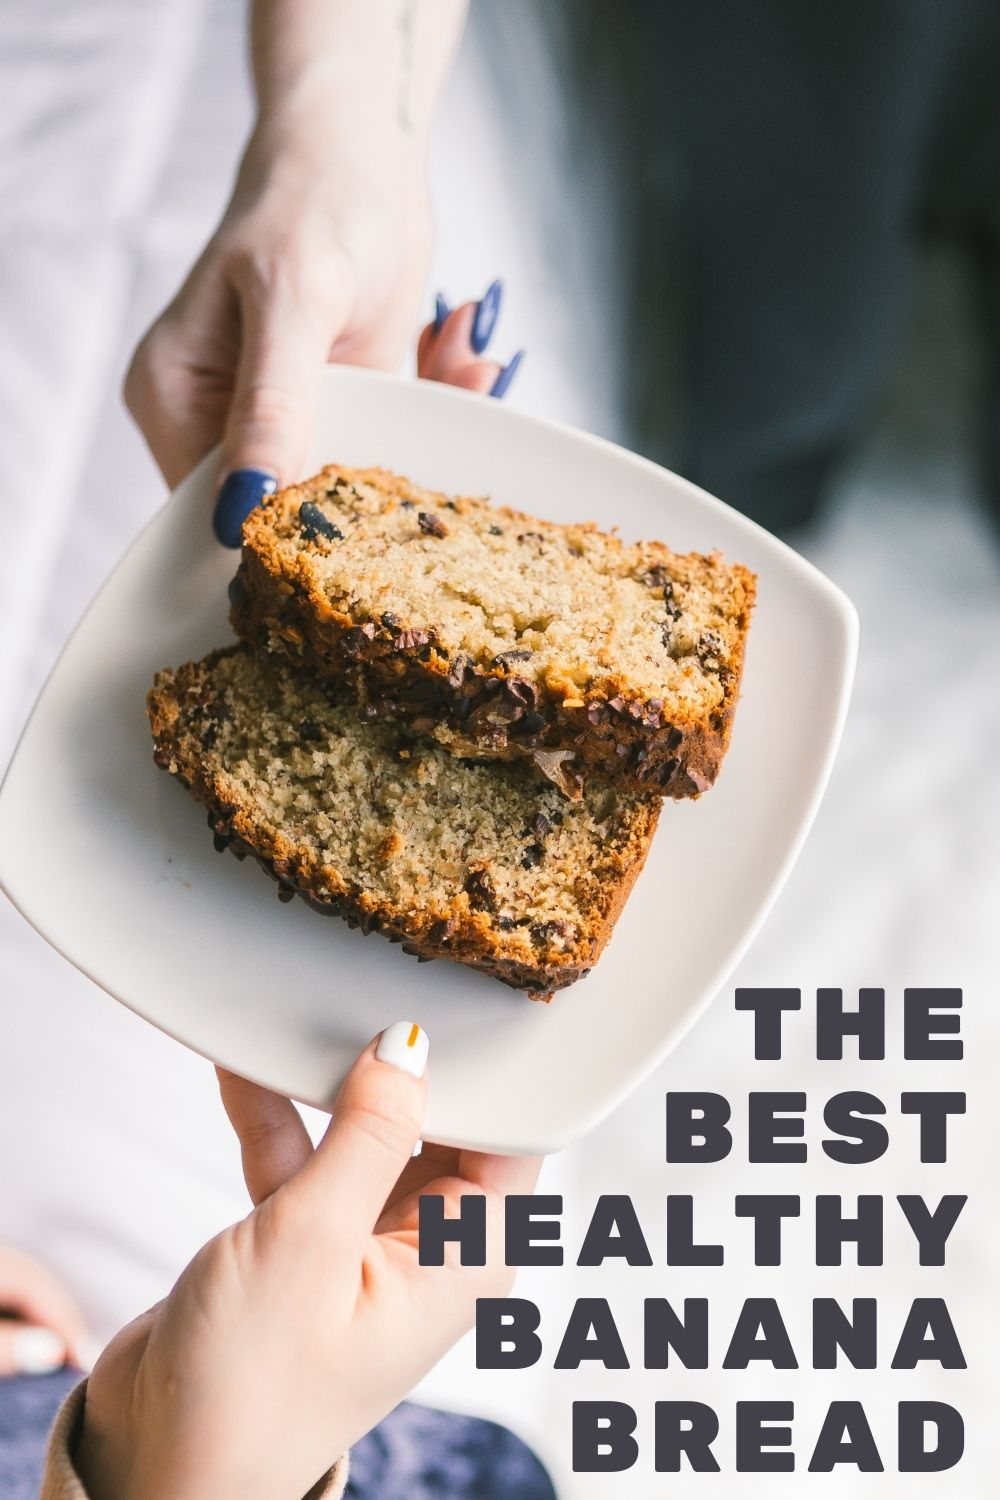 the best healthy banana bread graphic